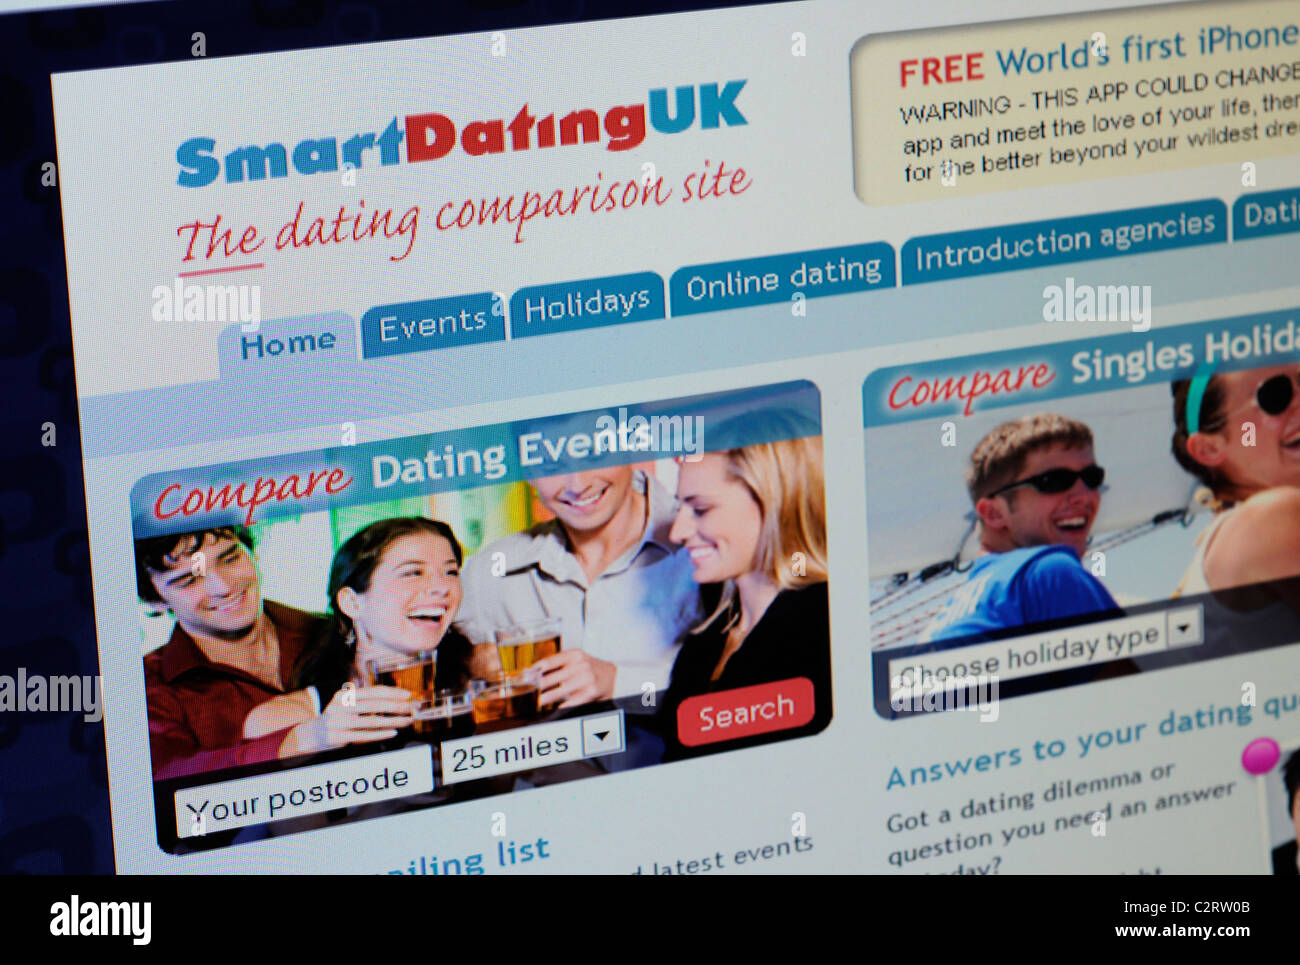 Smart dating uk online